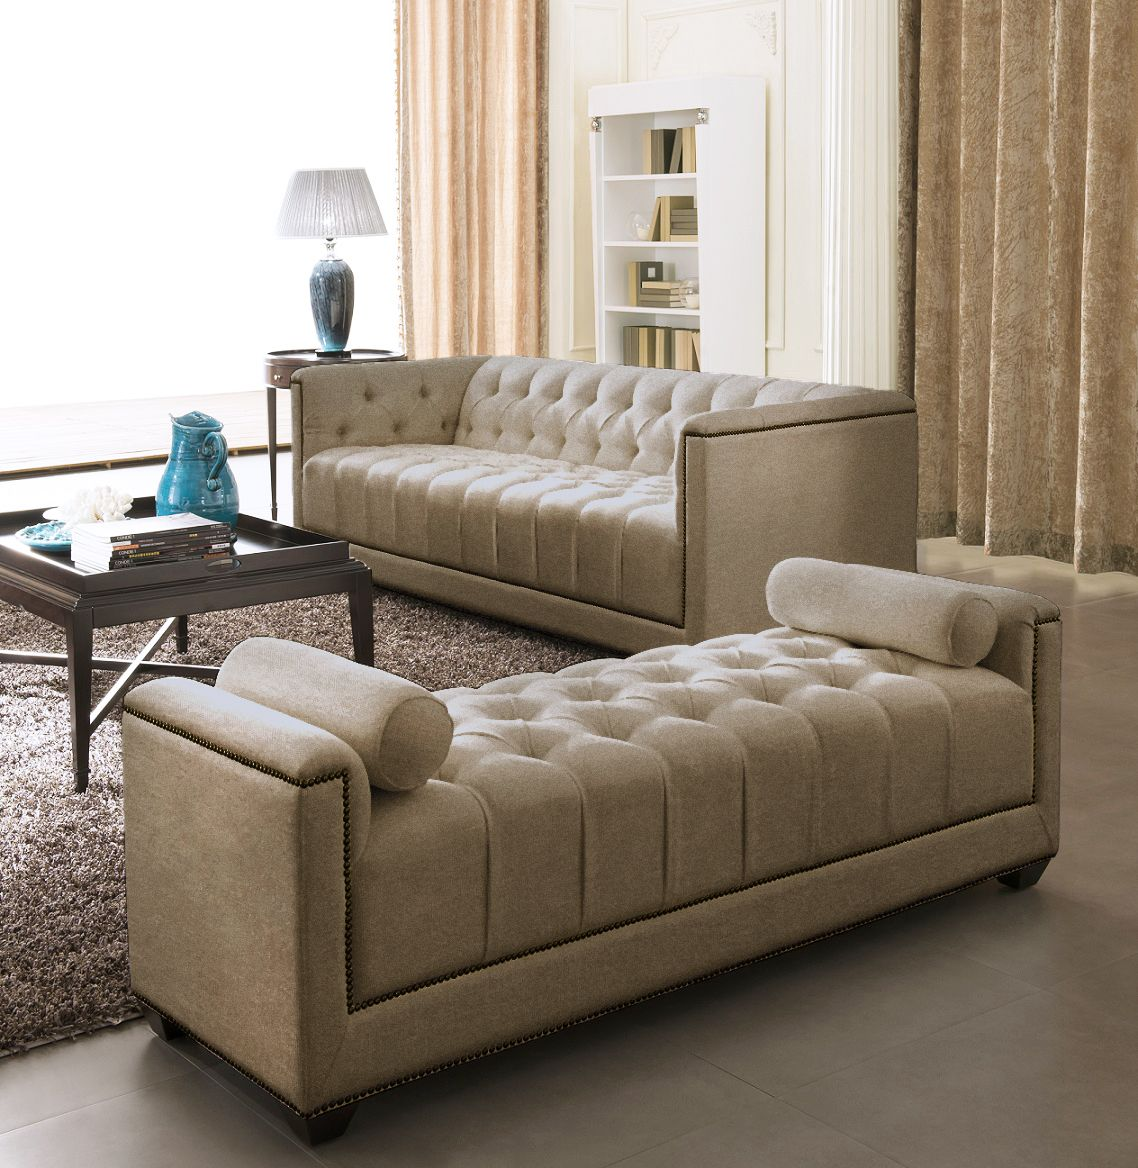 Best Fabric Sofa Set Eden Gold Living Room Sofa Design 640 x 480